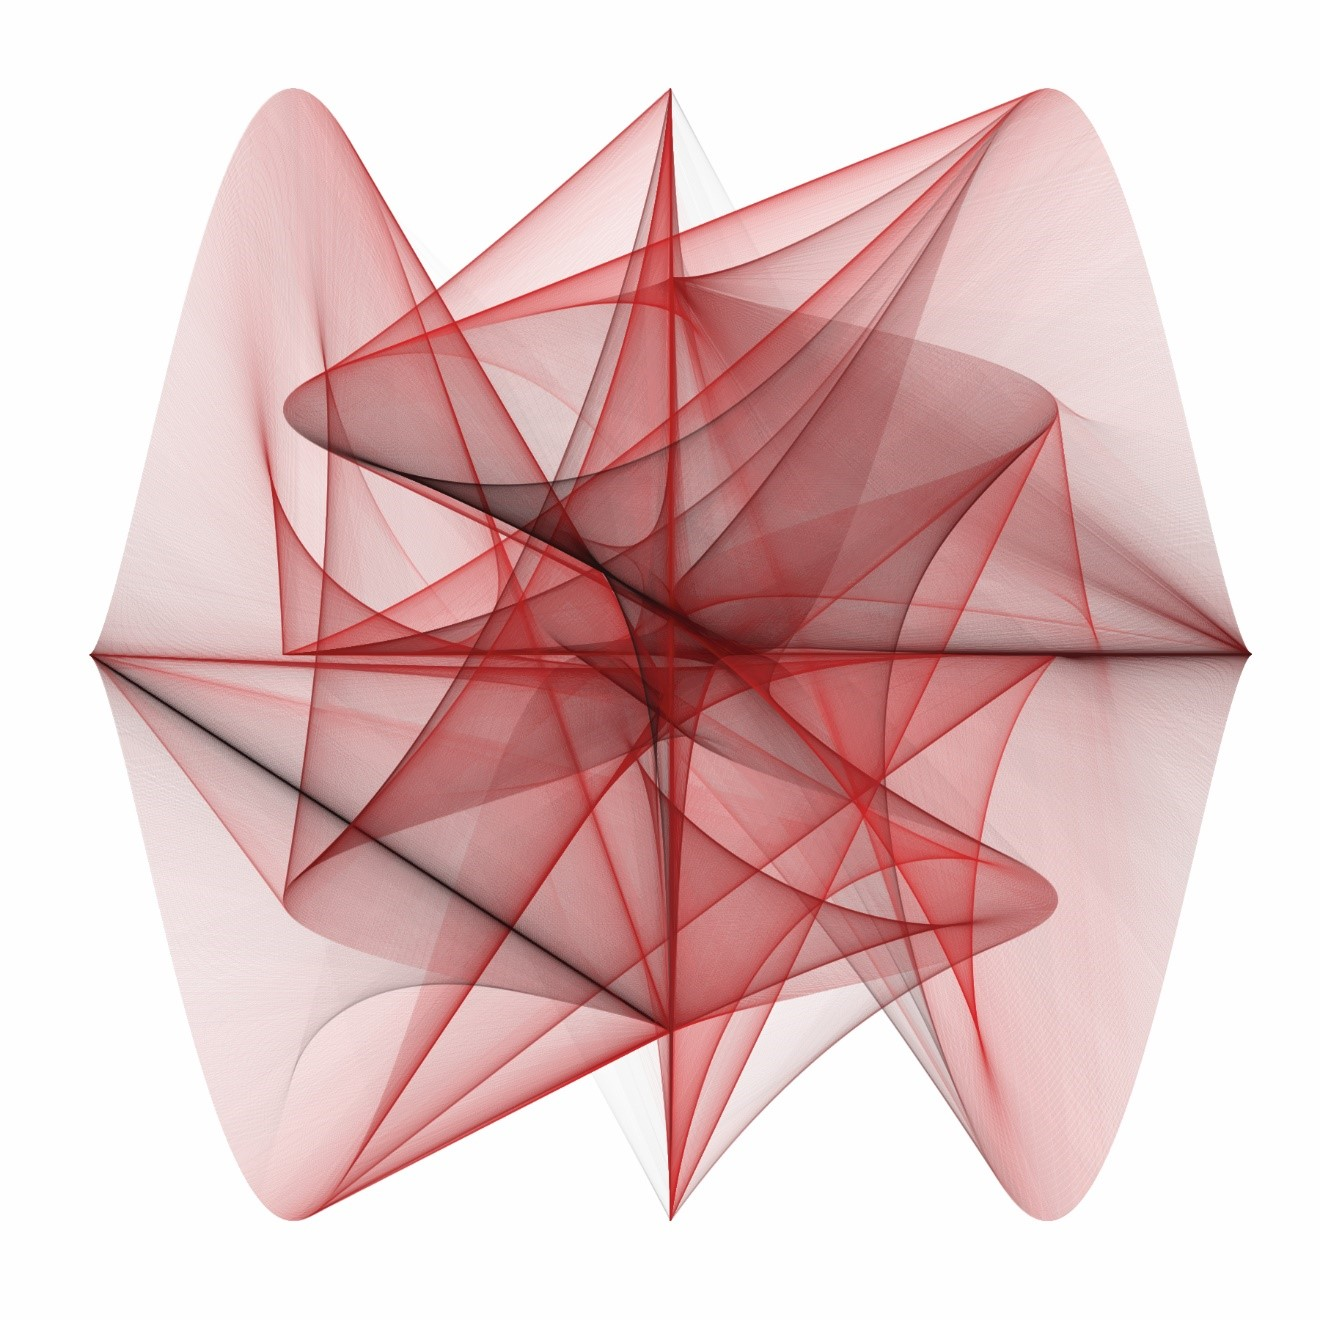 a graphic representation of sine-cosine equations in red